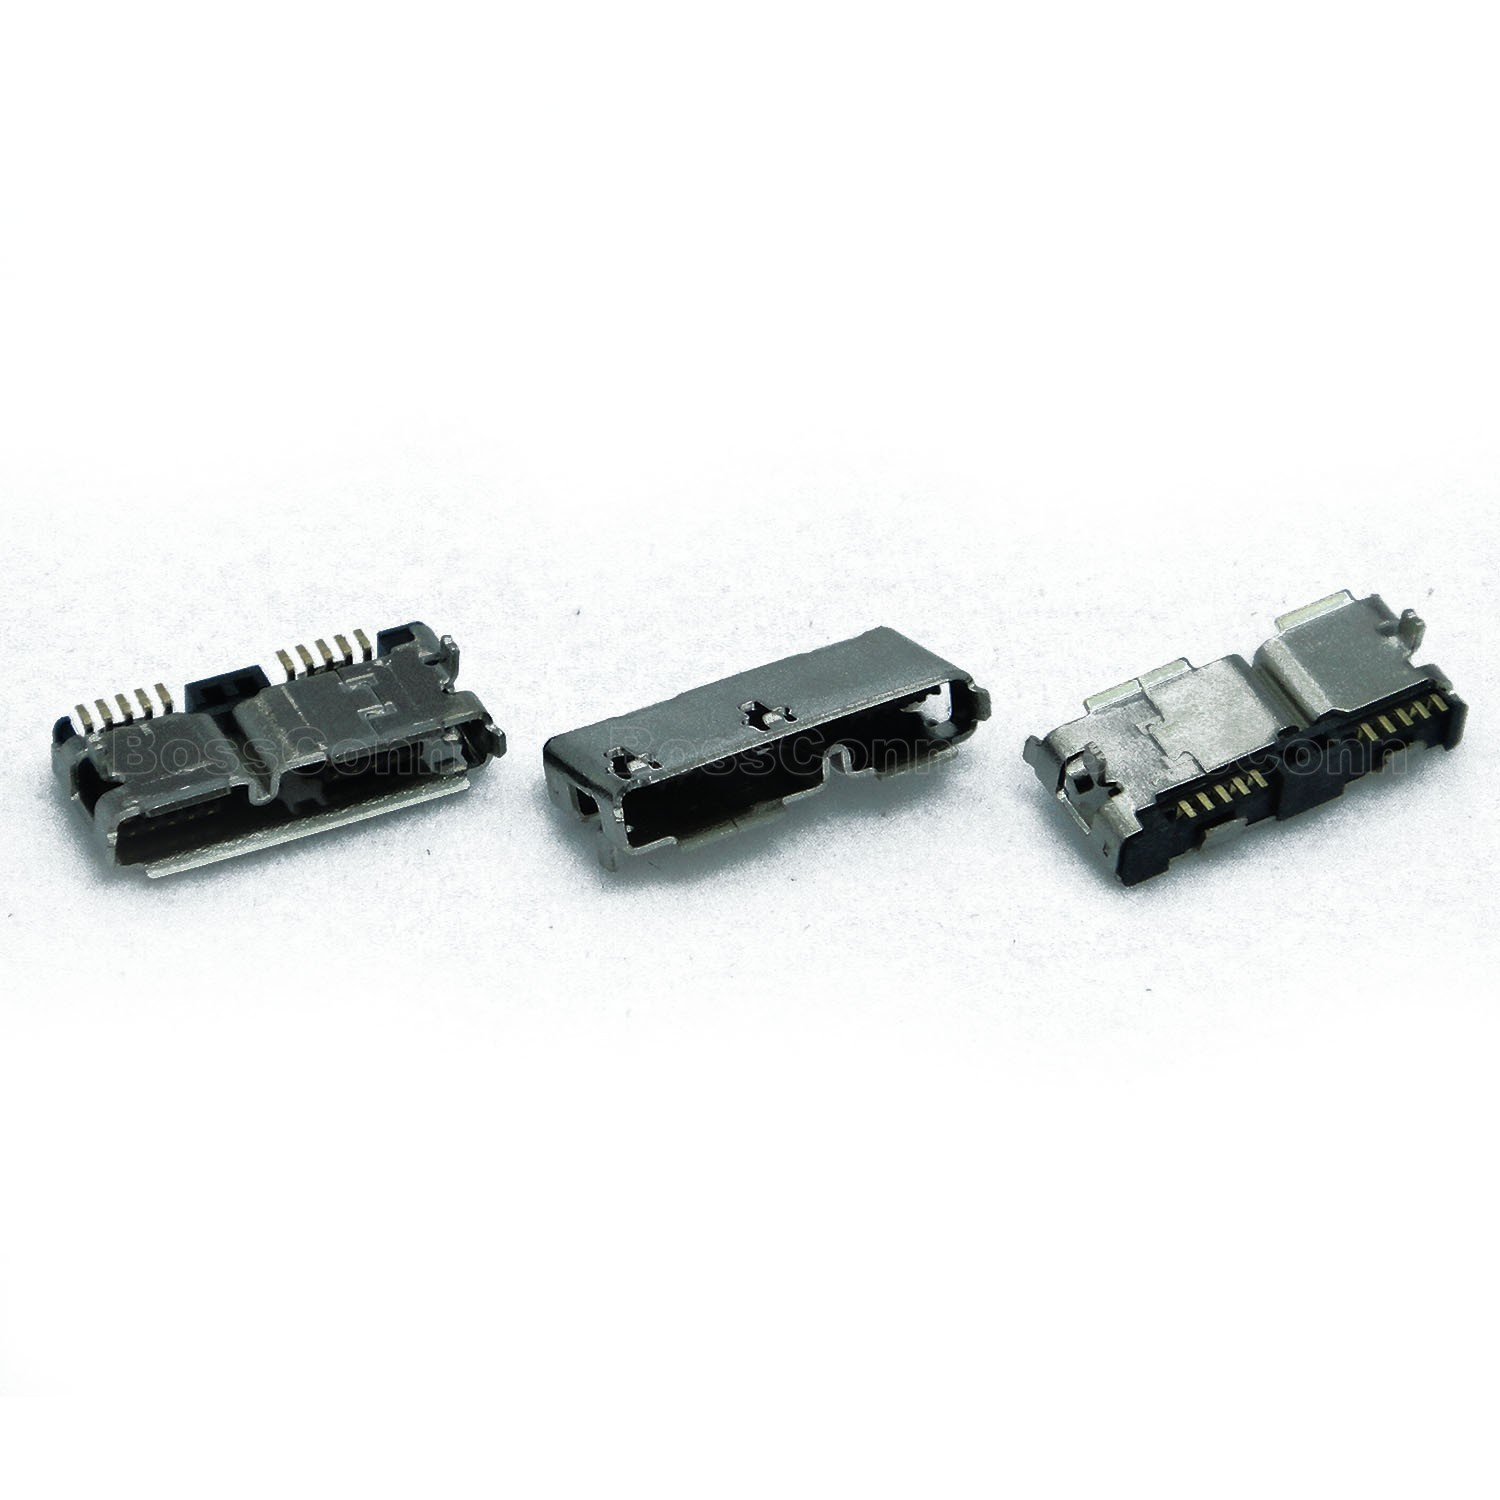 USB 3.0 Micro AB Female Connector, DIP For Outer Shell